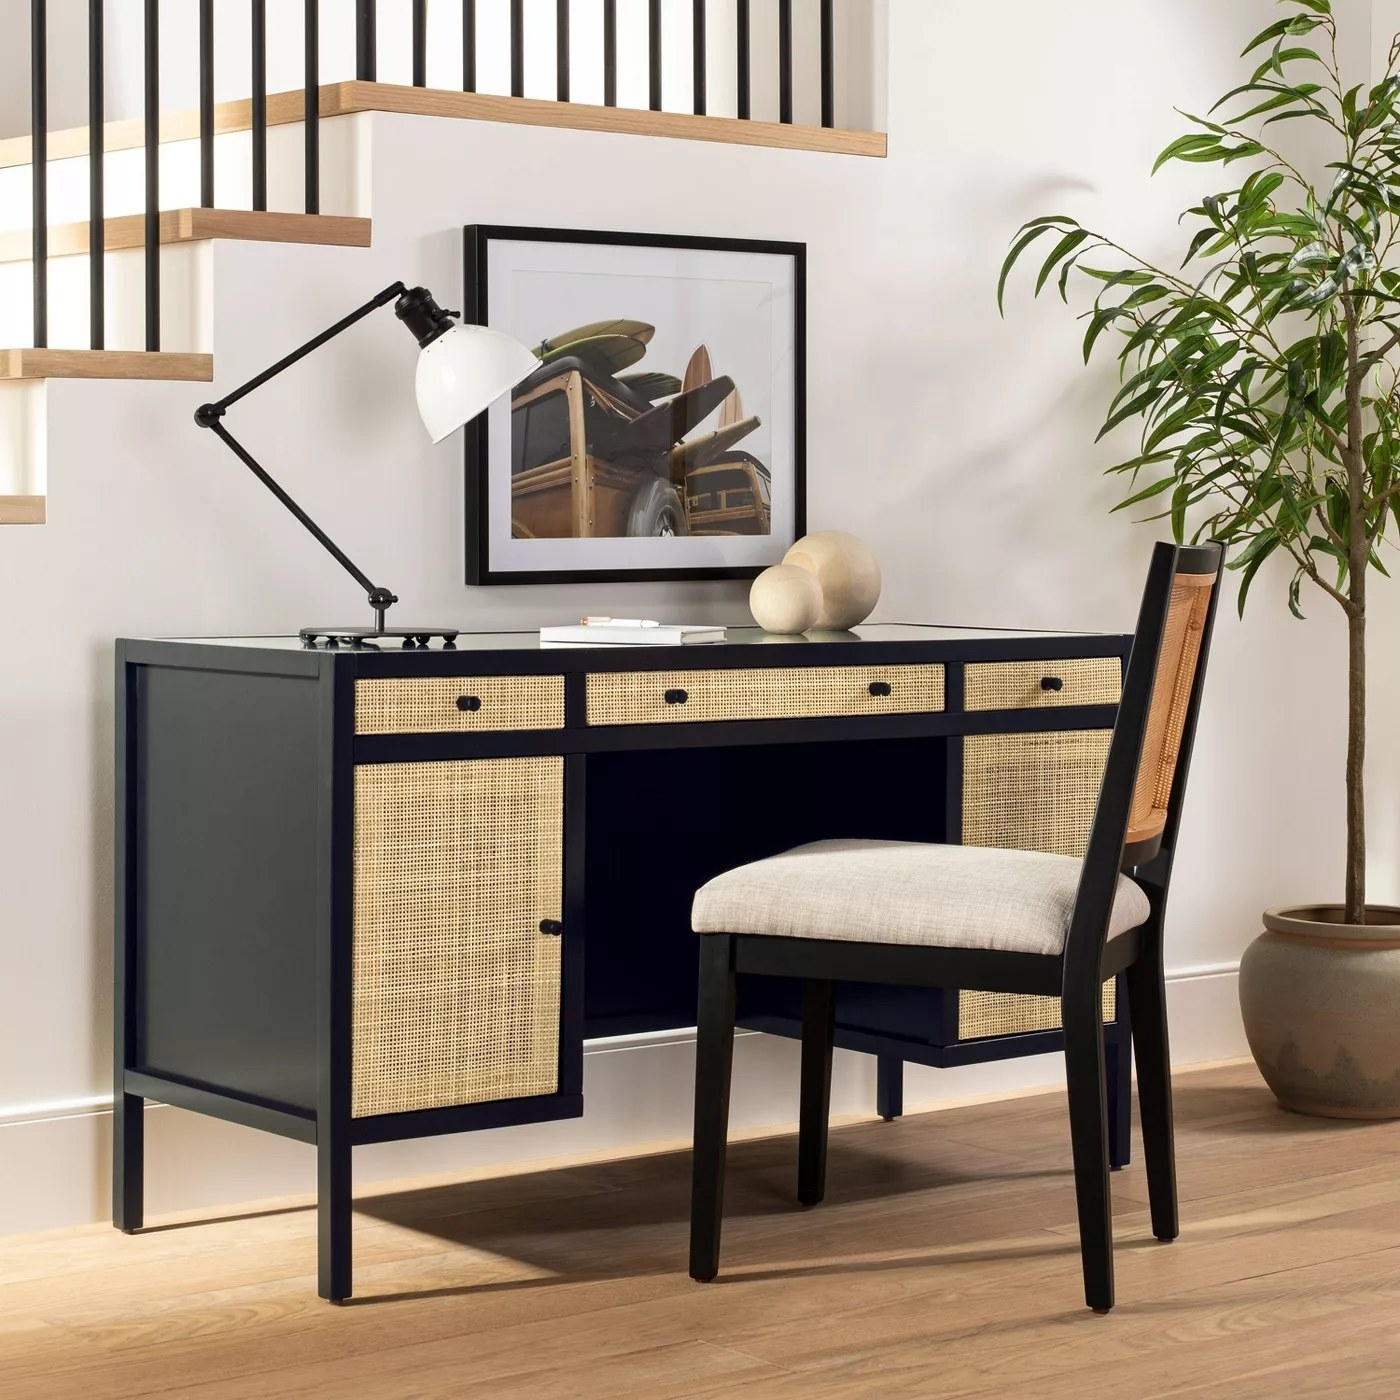 The black desk with woven front panels